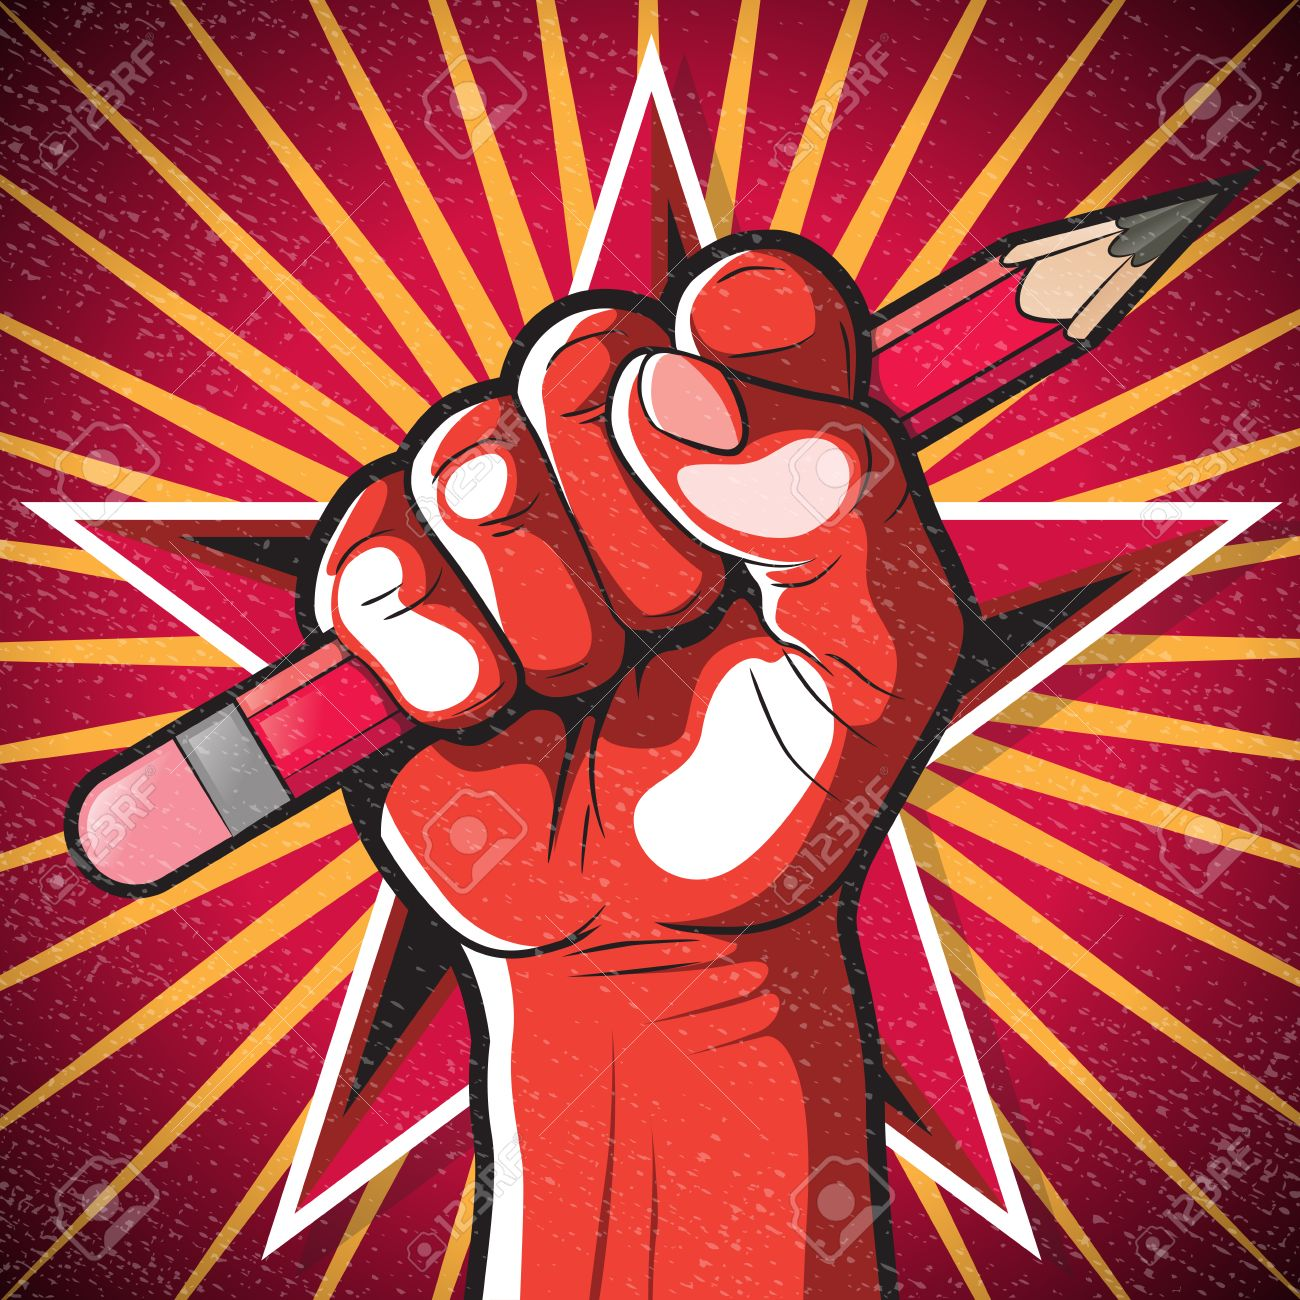 revolutionary punching fist and pencil sign great illustration